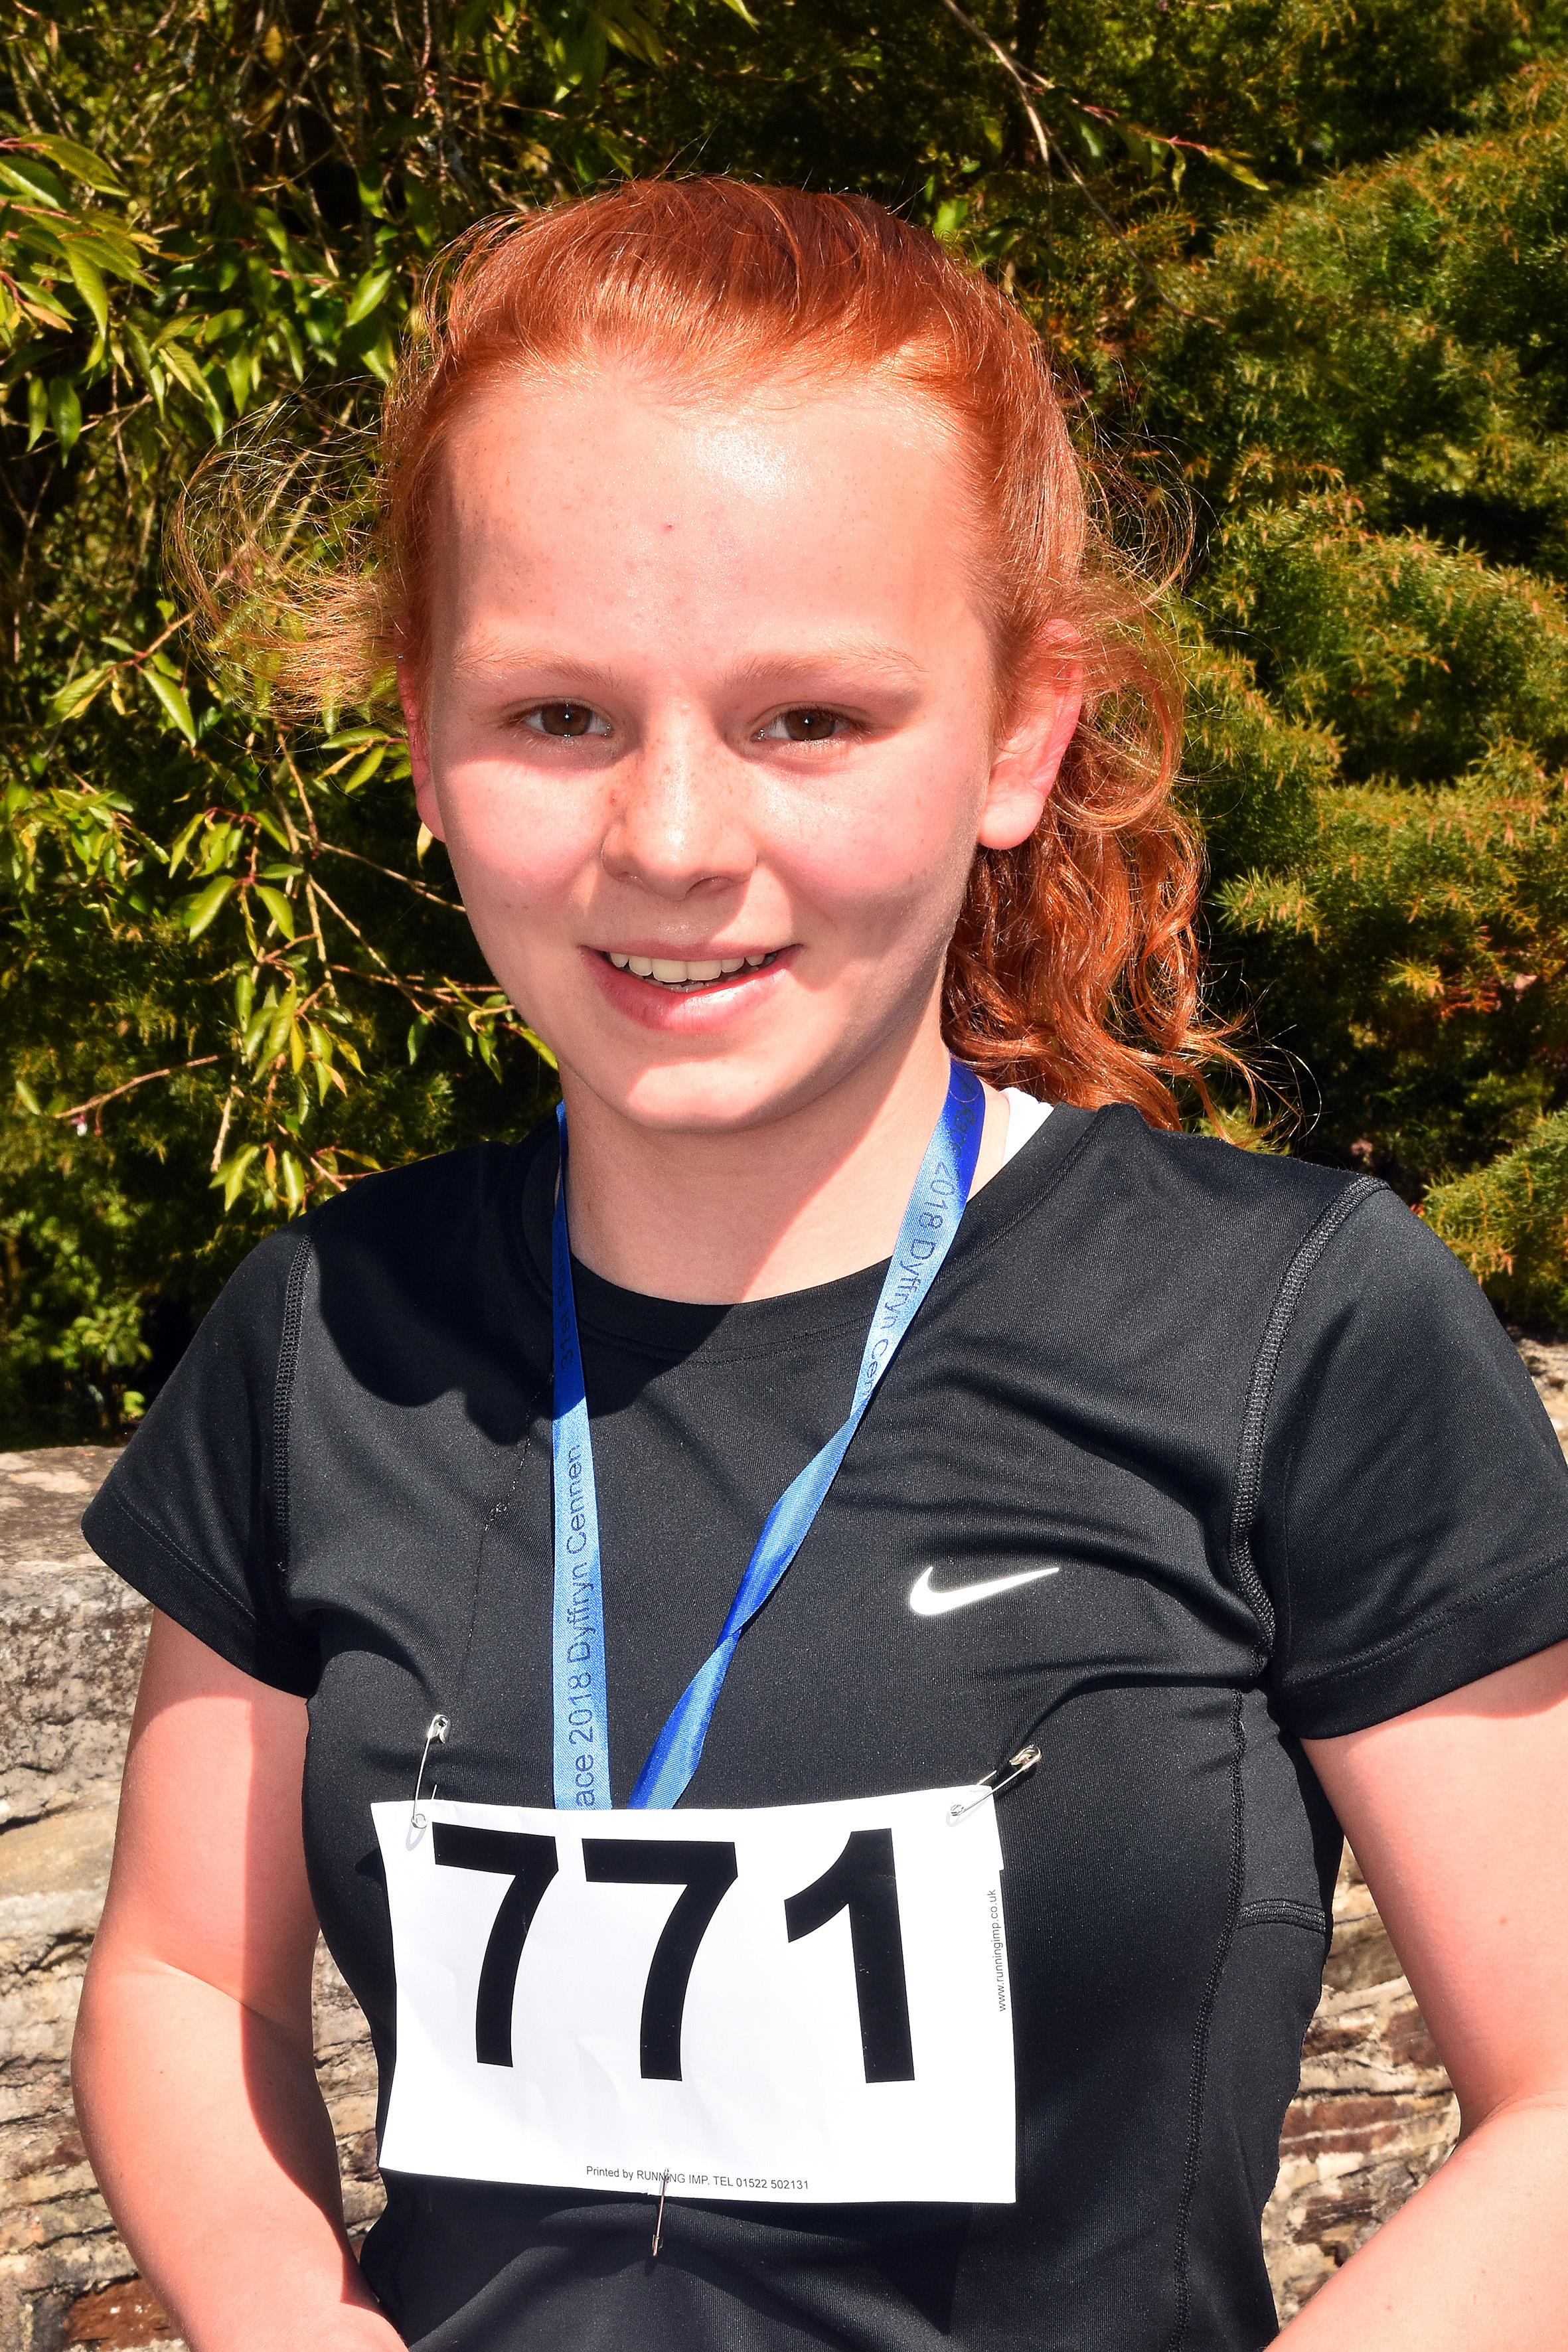 Fourteen year old Clara James from Ysgol Maes y Gwendraeth was the first girl back in the Junior race.